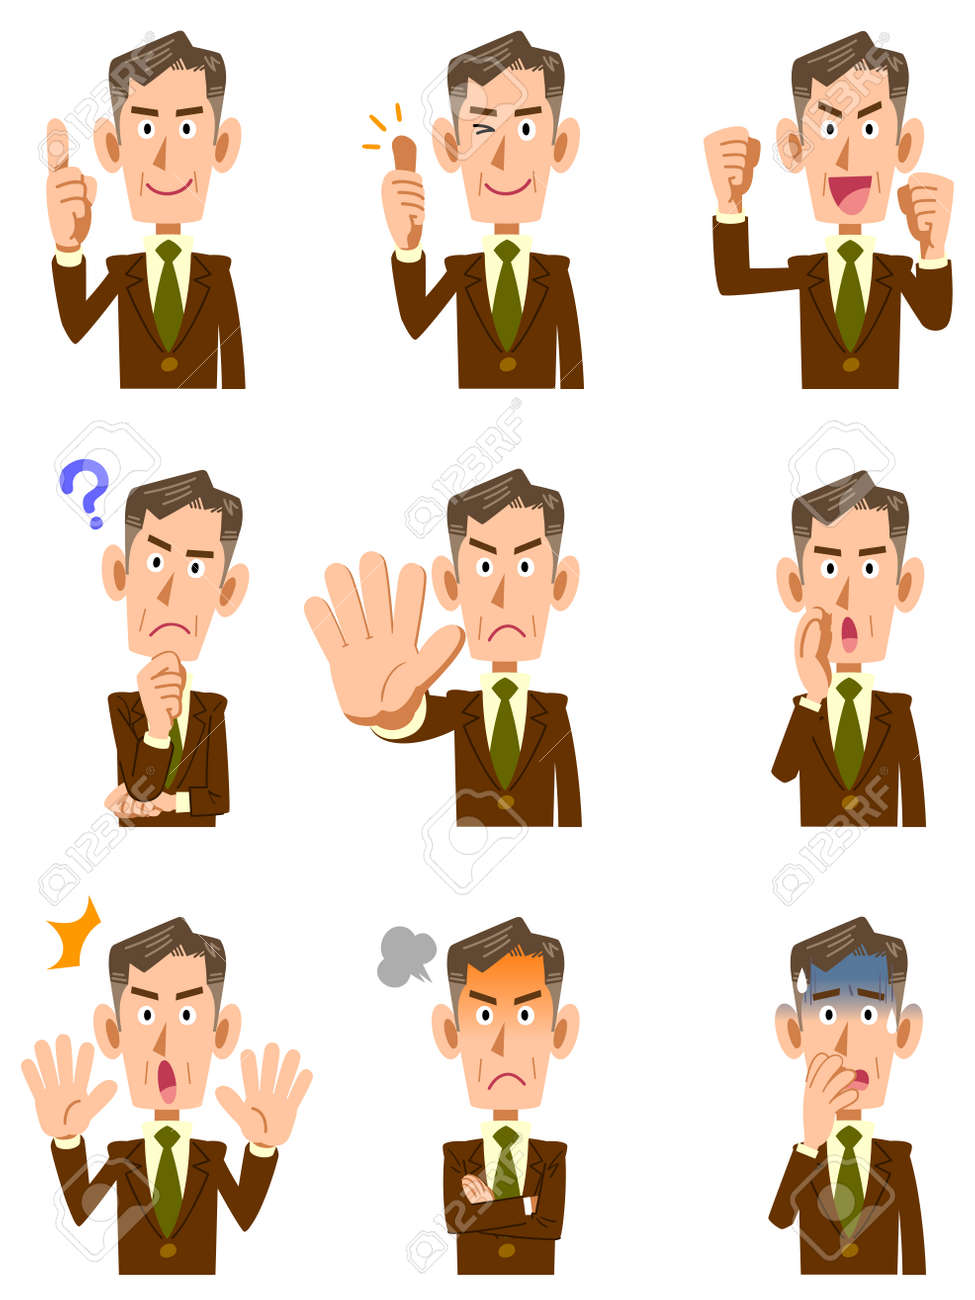 Elderly businessman 9 different gestures and facial expressions - 52506636